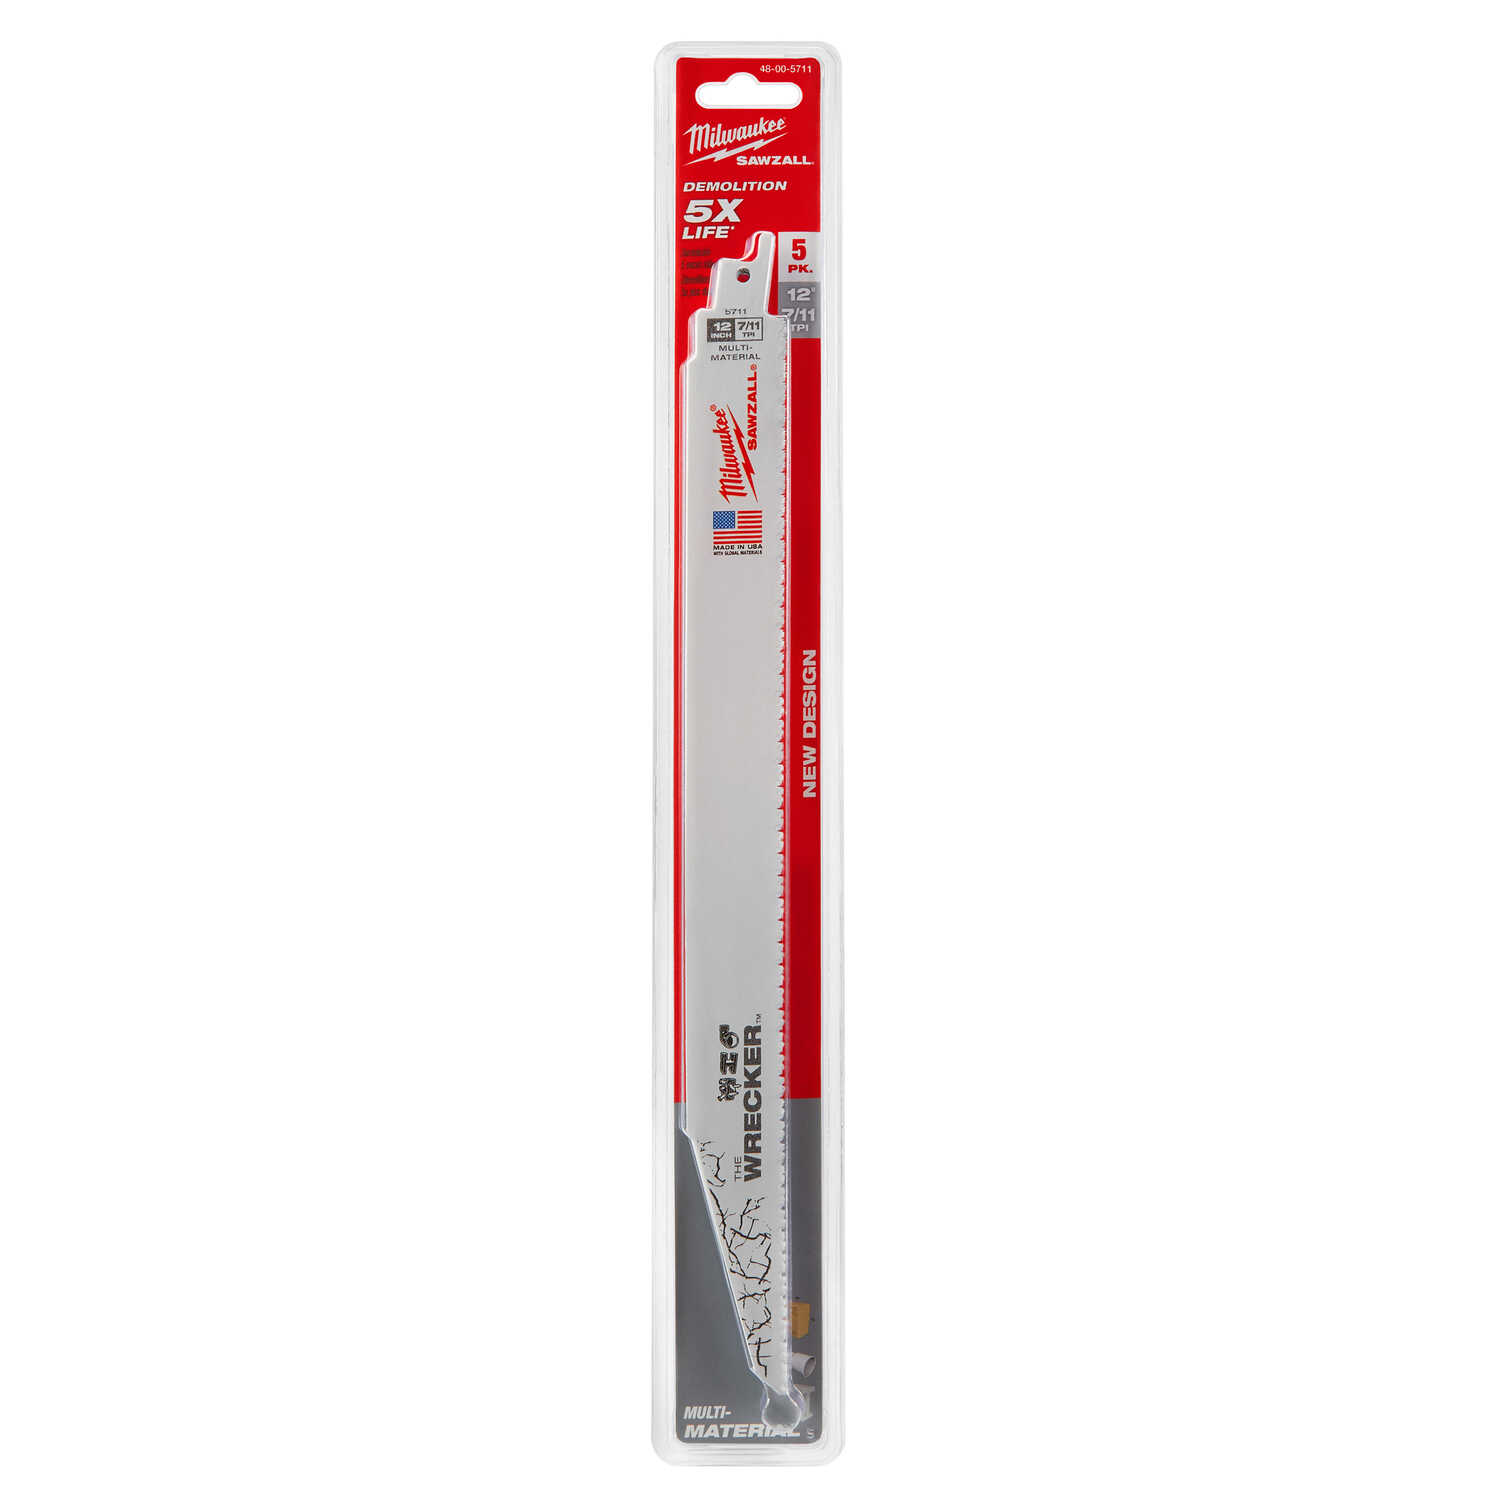 Milwaukee  The WRECKER  12 in. Bi-Metal  Demolition  Reciprocating Saw Blade  7/11 TPI 5 pk